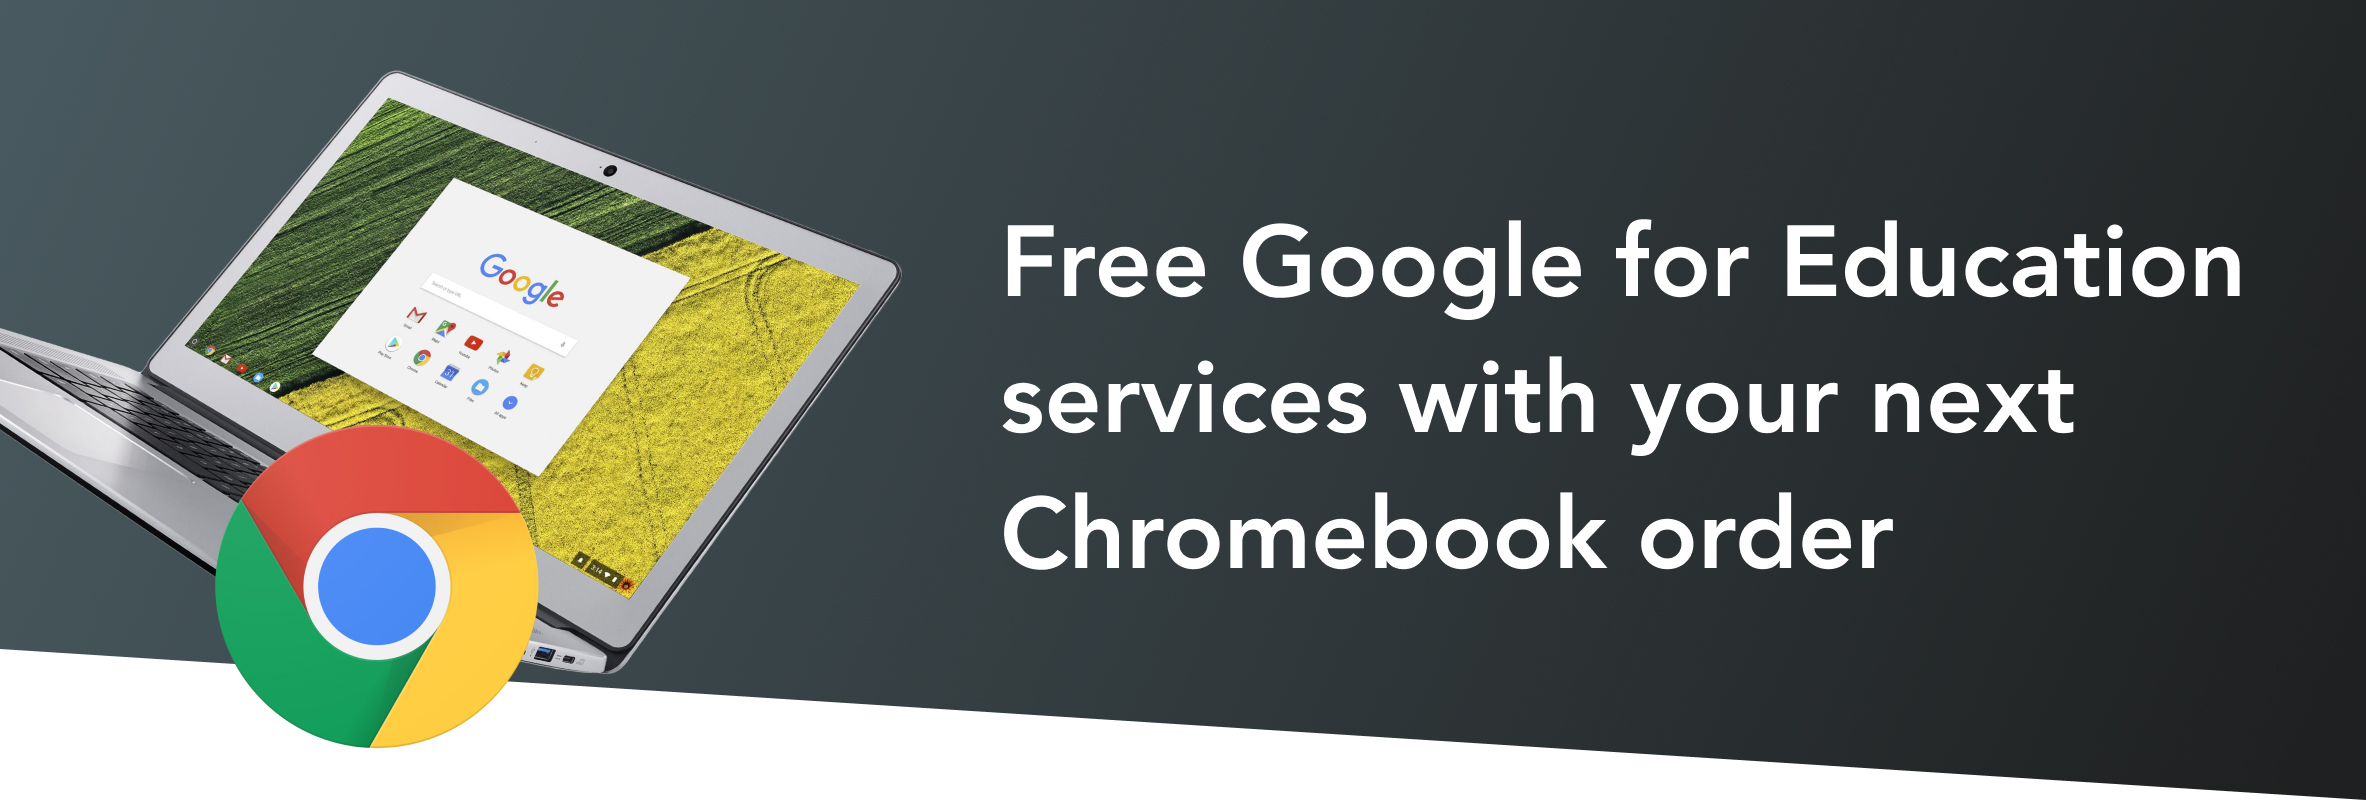 Free Google services with chromebook purchase until August 31, 2020.